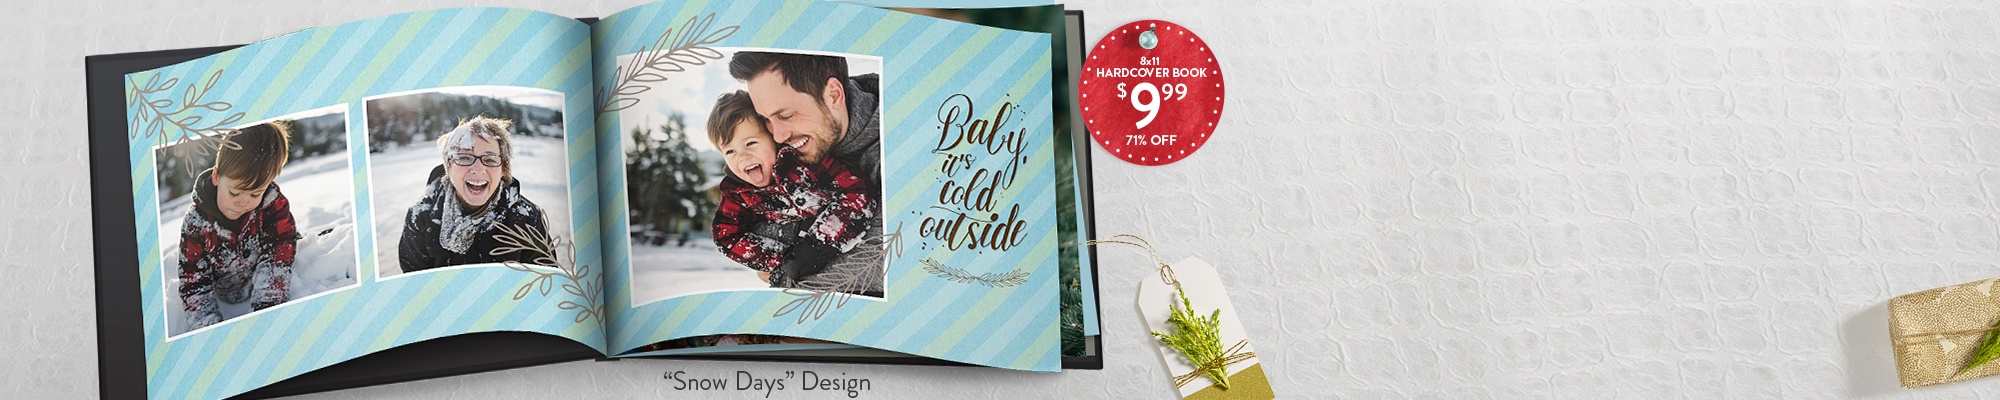 Photo Books : Regularly $34.99, use BESTBOOK to save $25 on our best-selling 8x11 Hardcover Photo Book.